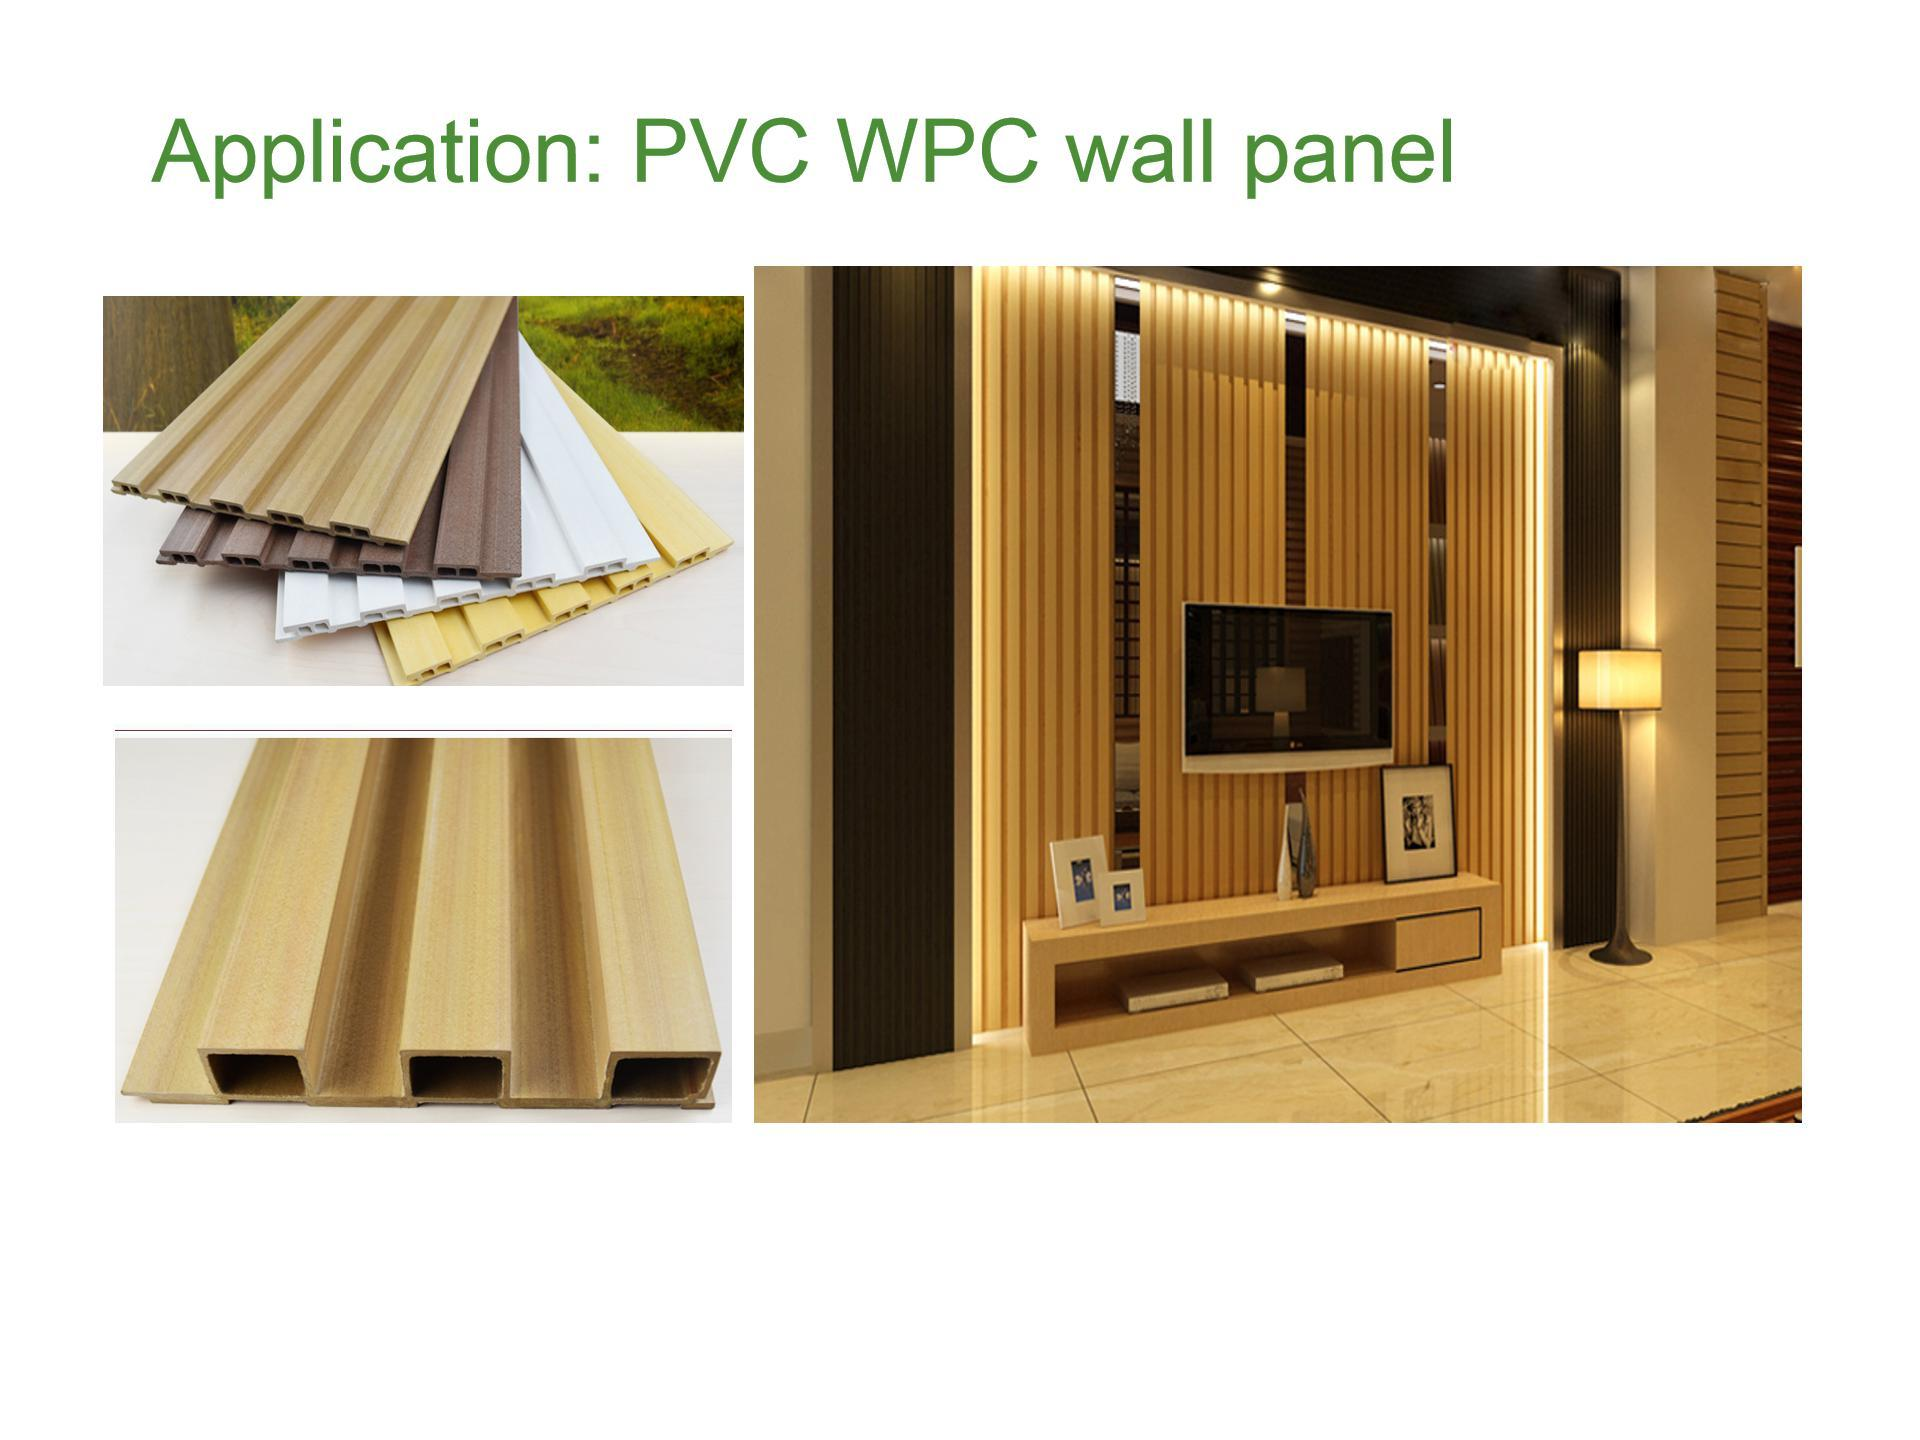 Colorful WPC wall panel installed